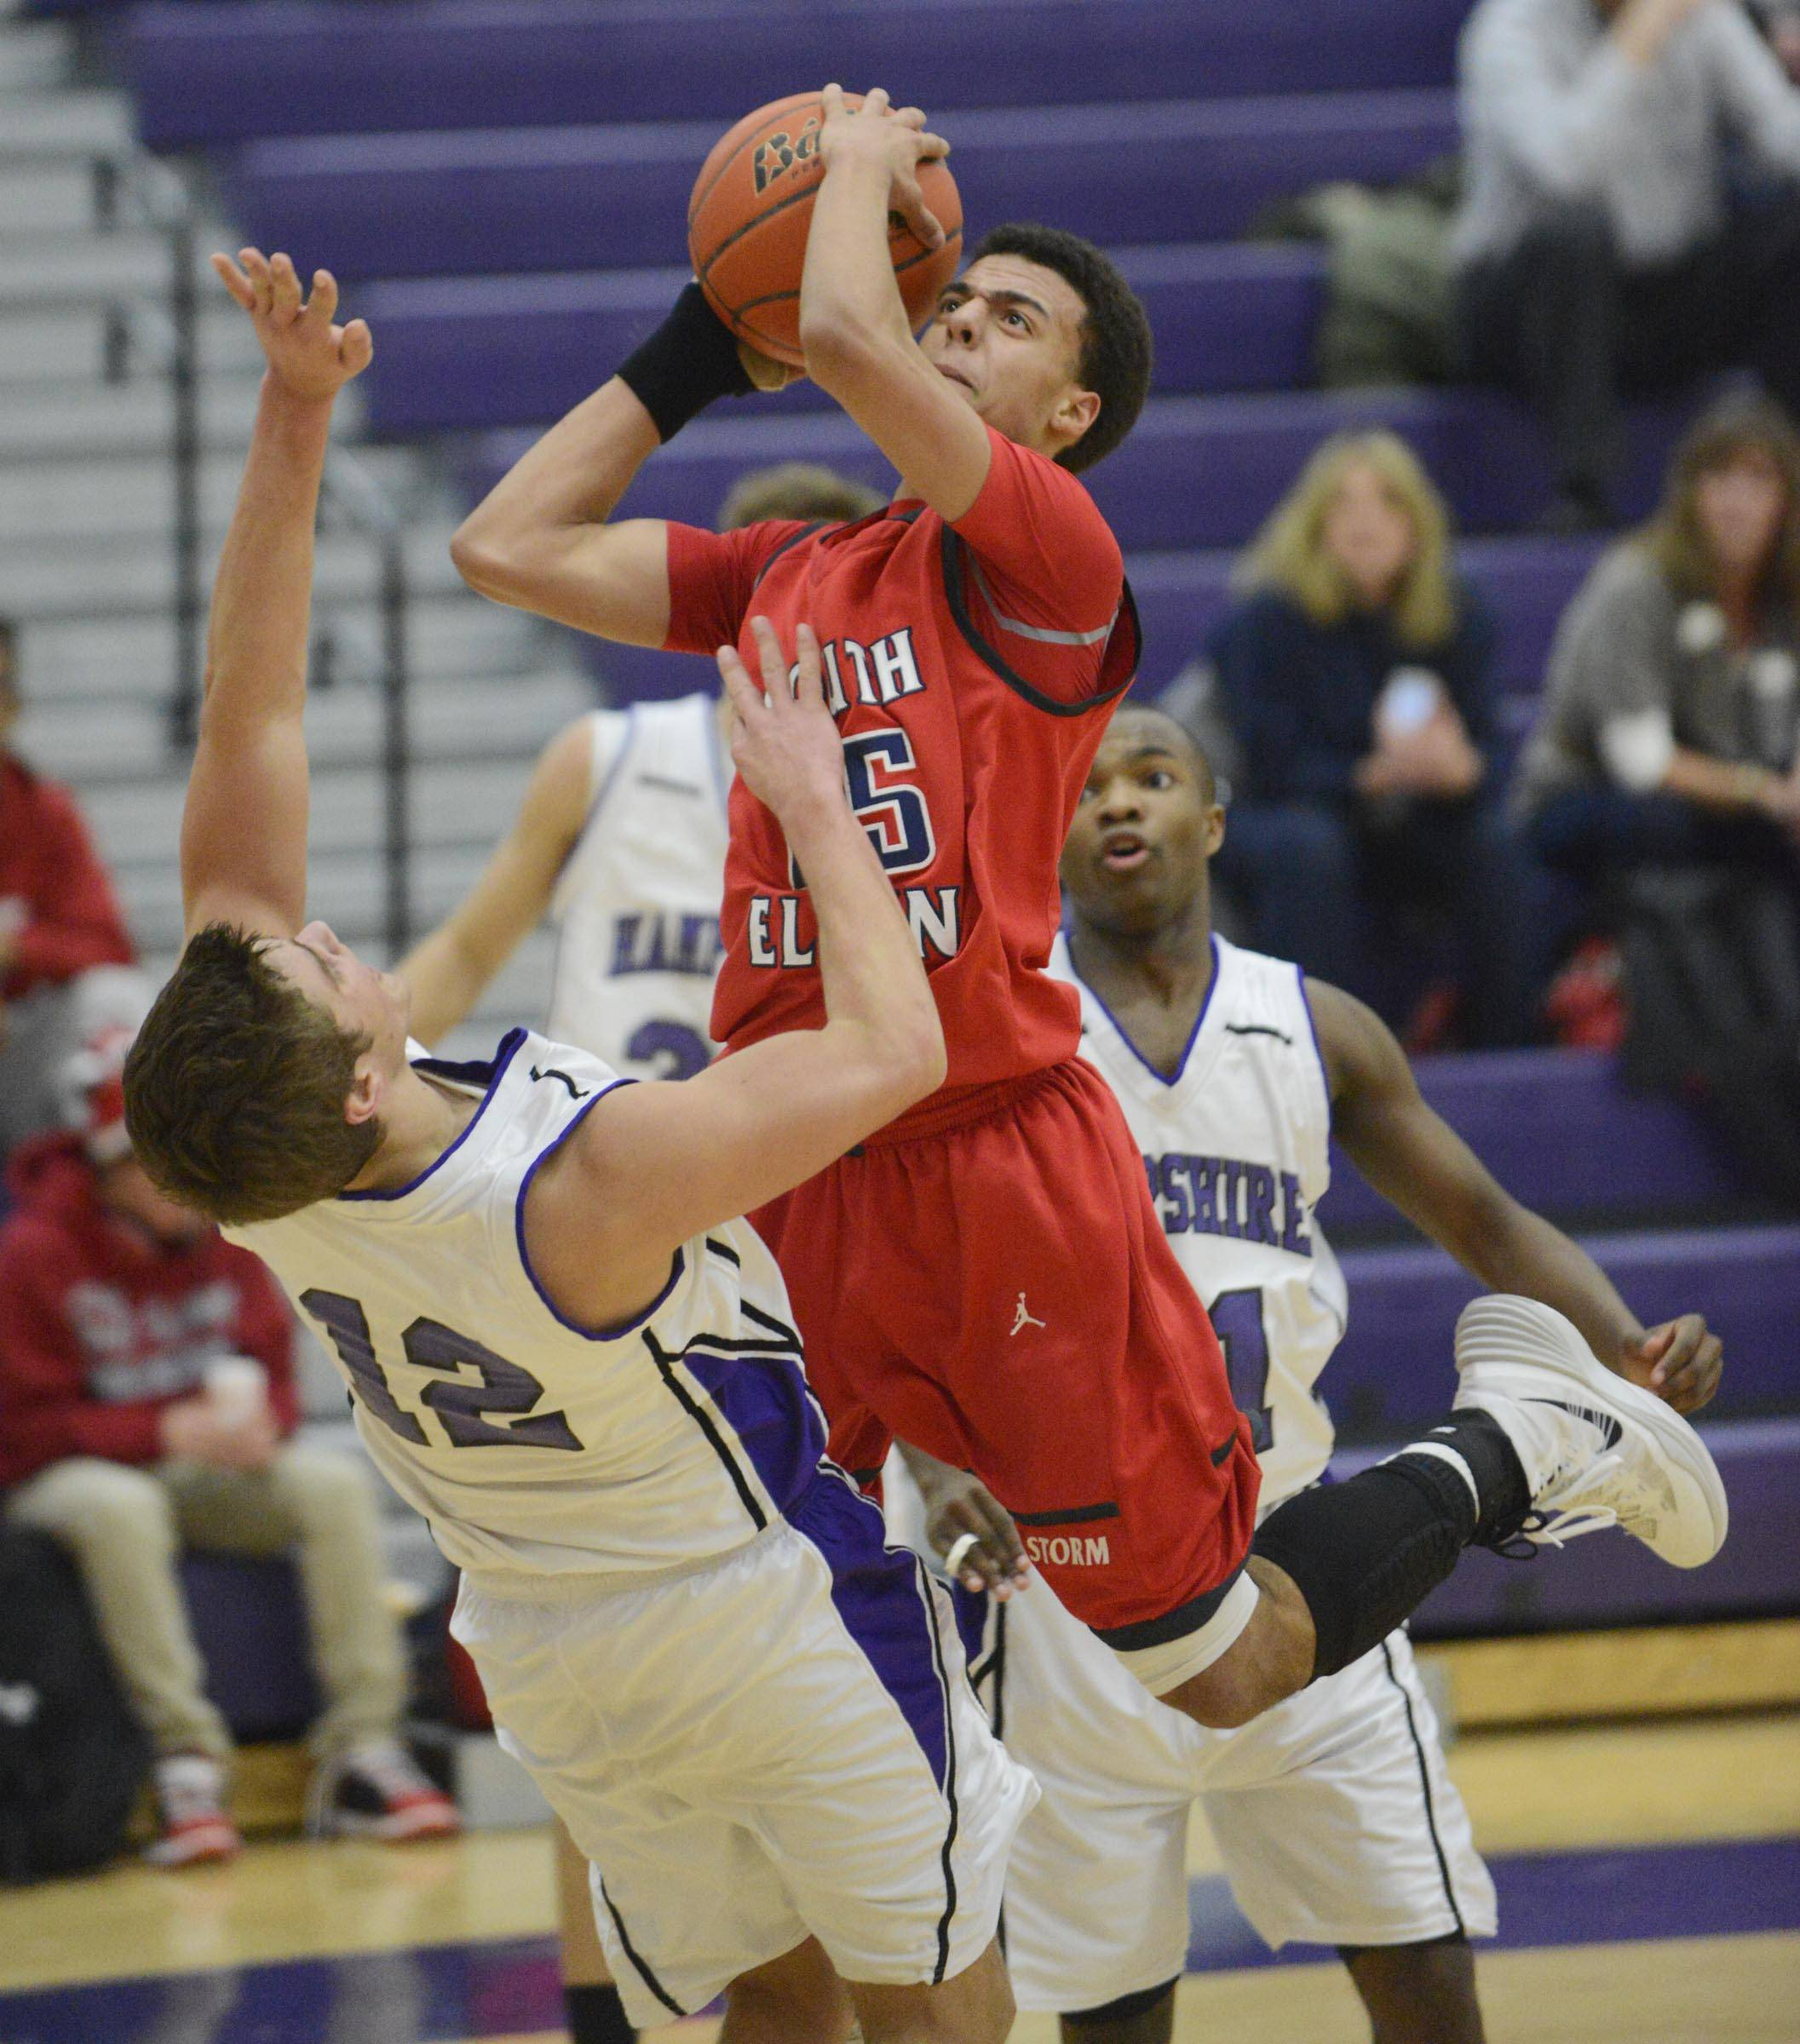 South Elgin's Darius Wells is called for a charge as he runs into Hampshire's Matthew Bridges Wednesday in Hampshire.